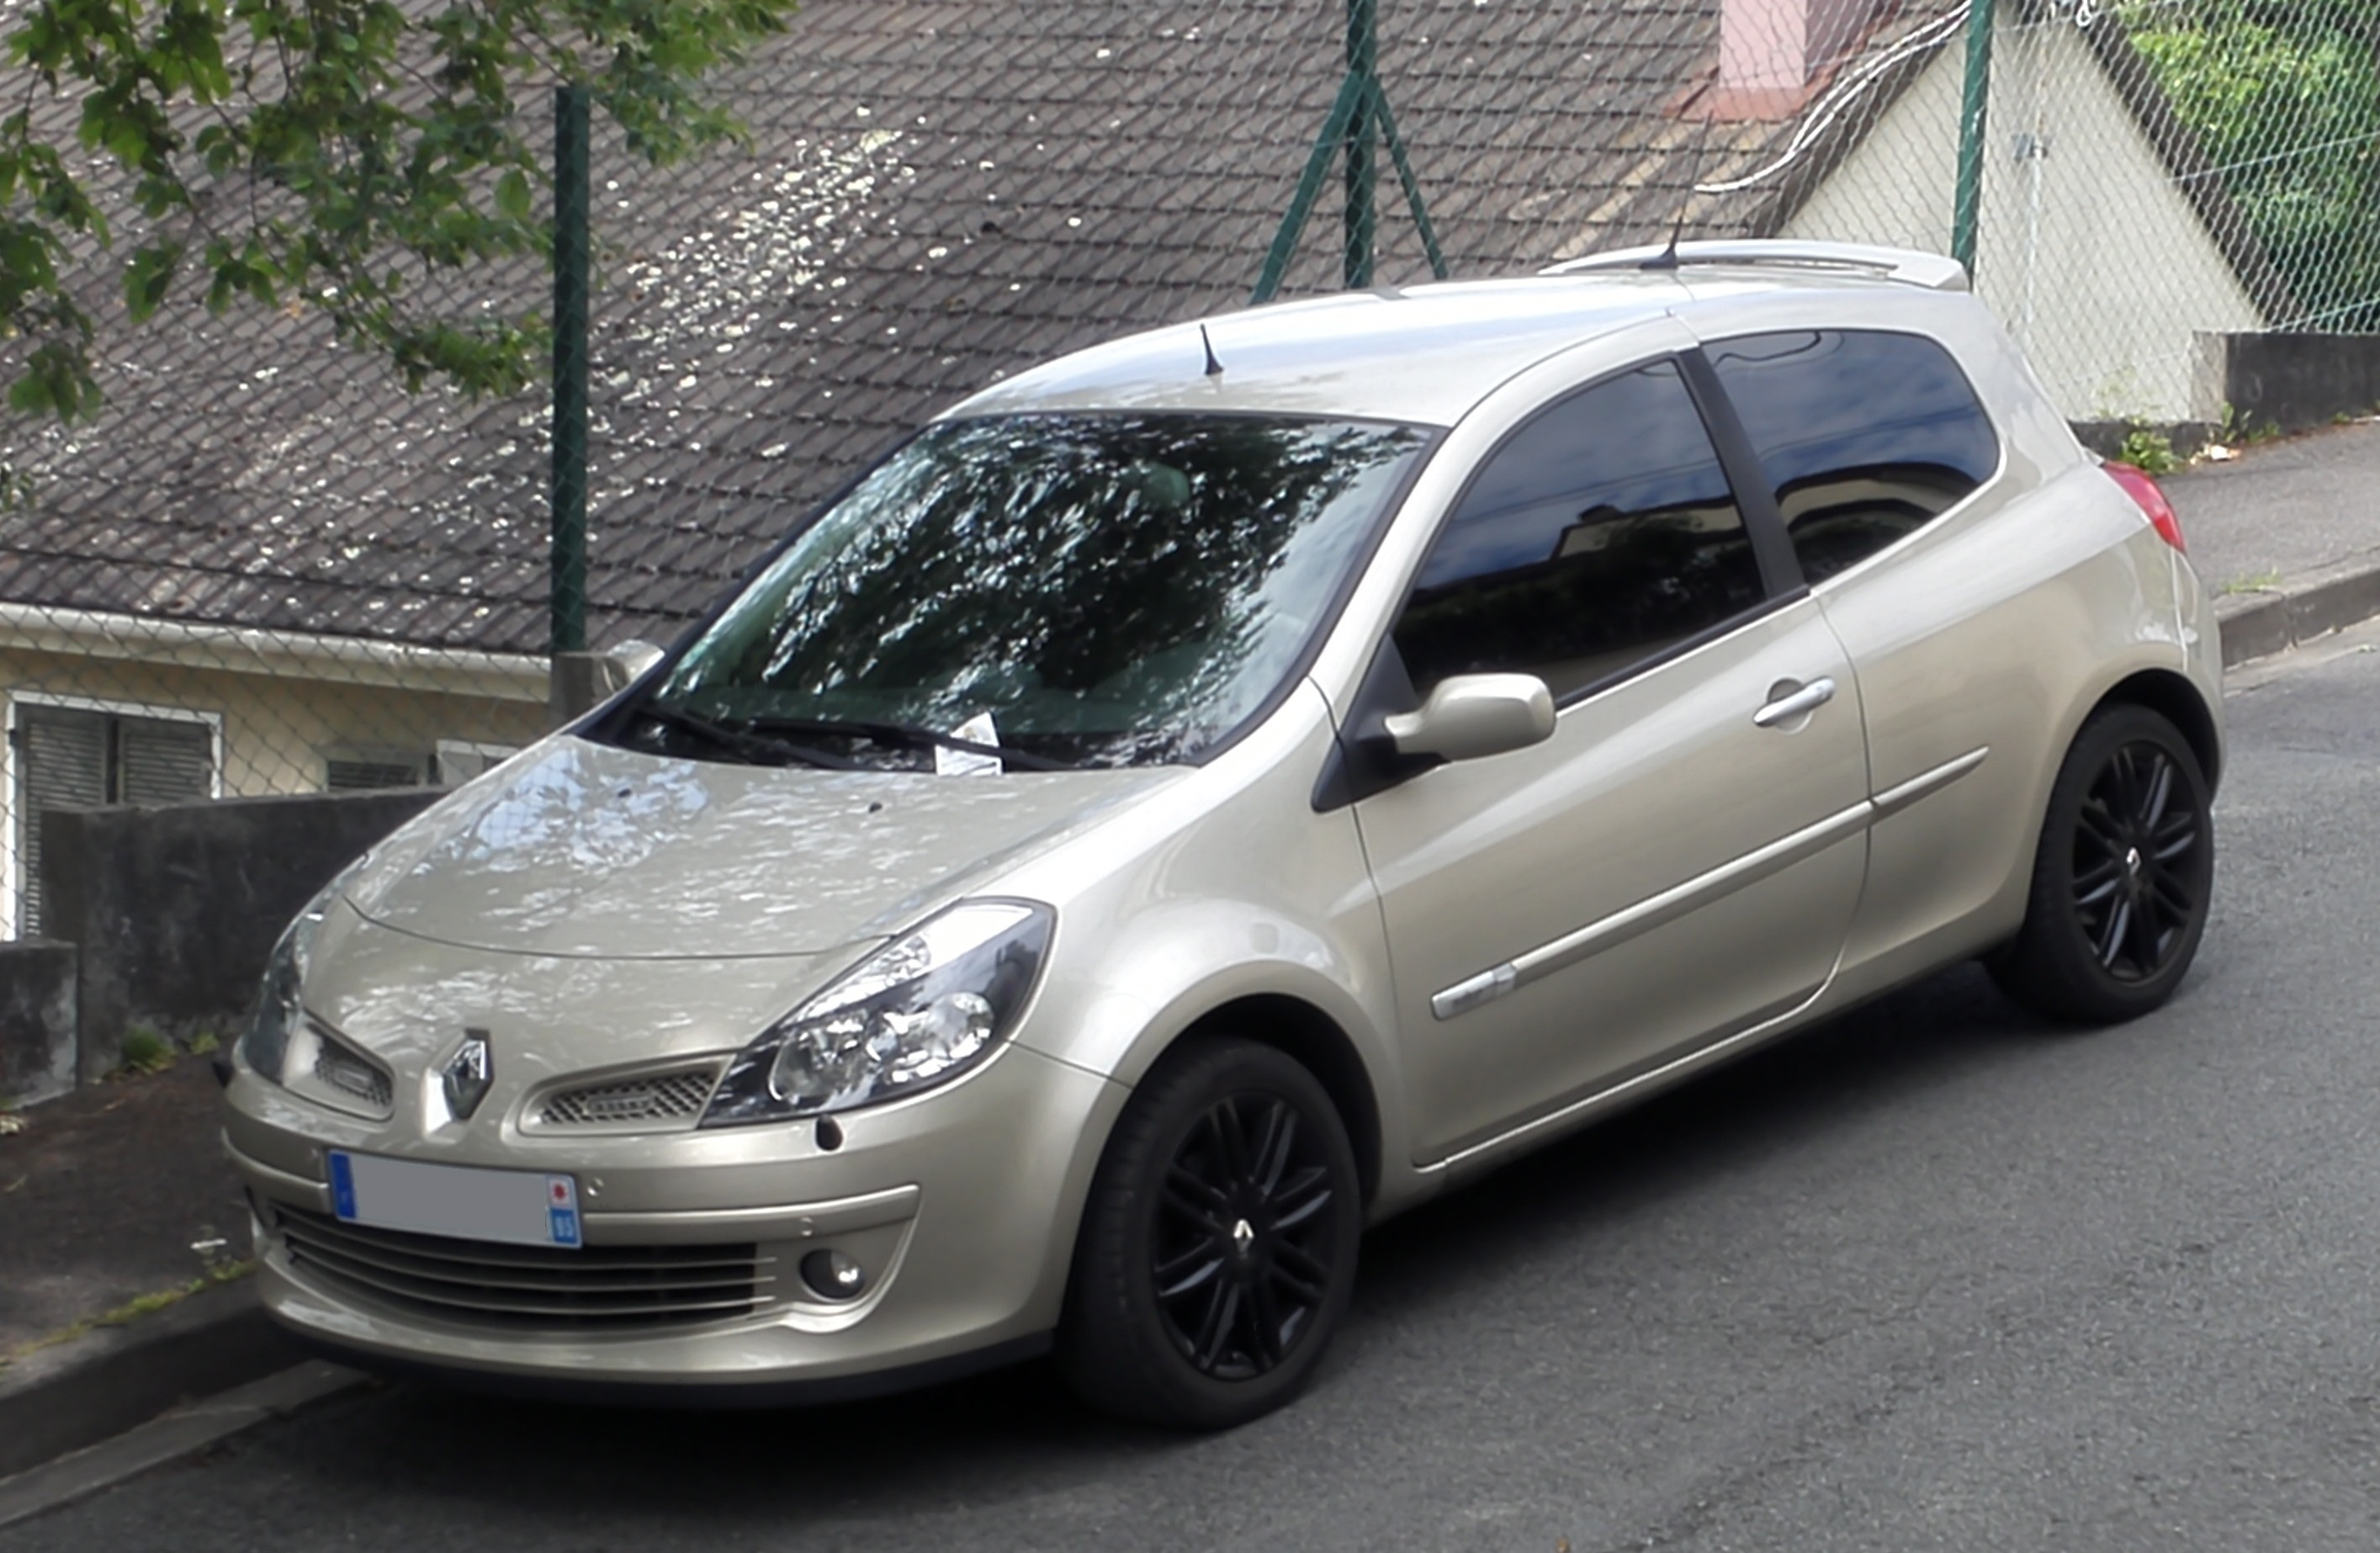 renault clio 3 1 initiale 1 6 16v vendue page 13 clio clio rs renault forum marques. Black Bedroom Furniture Sets. Home Design Ideas